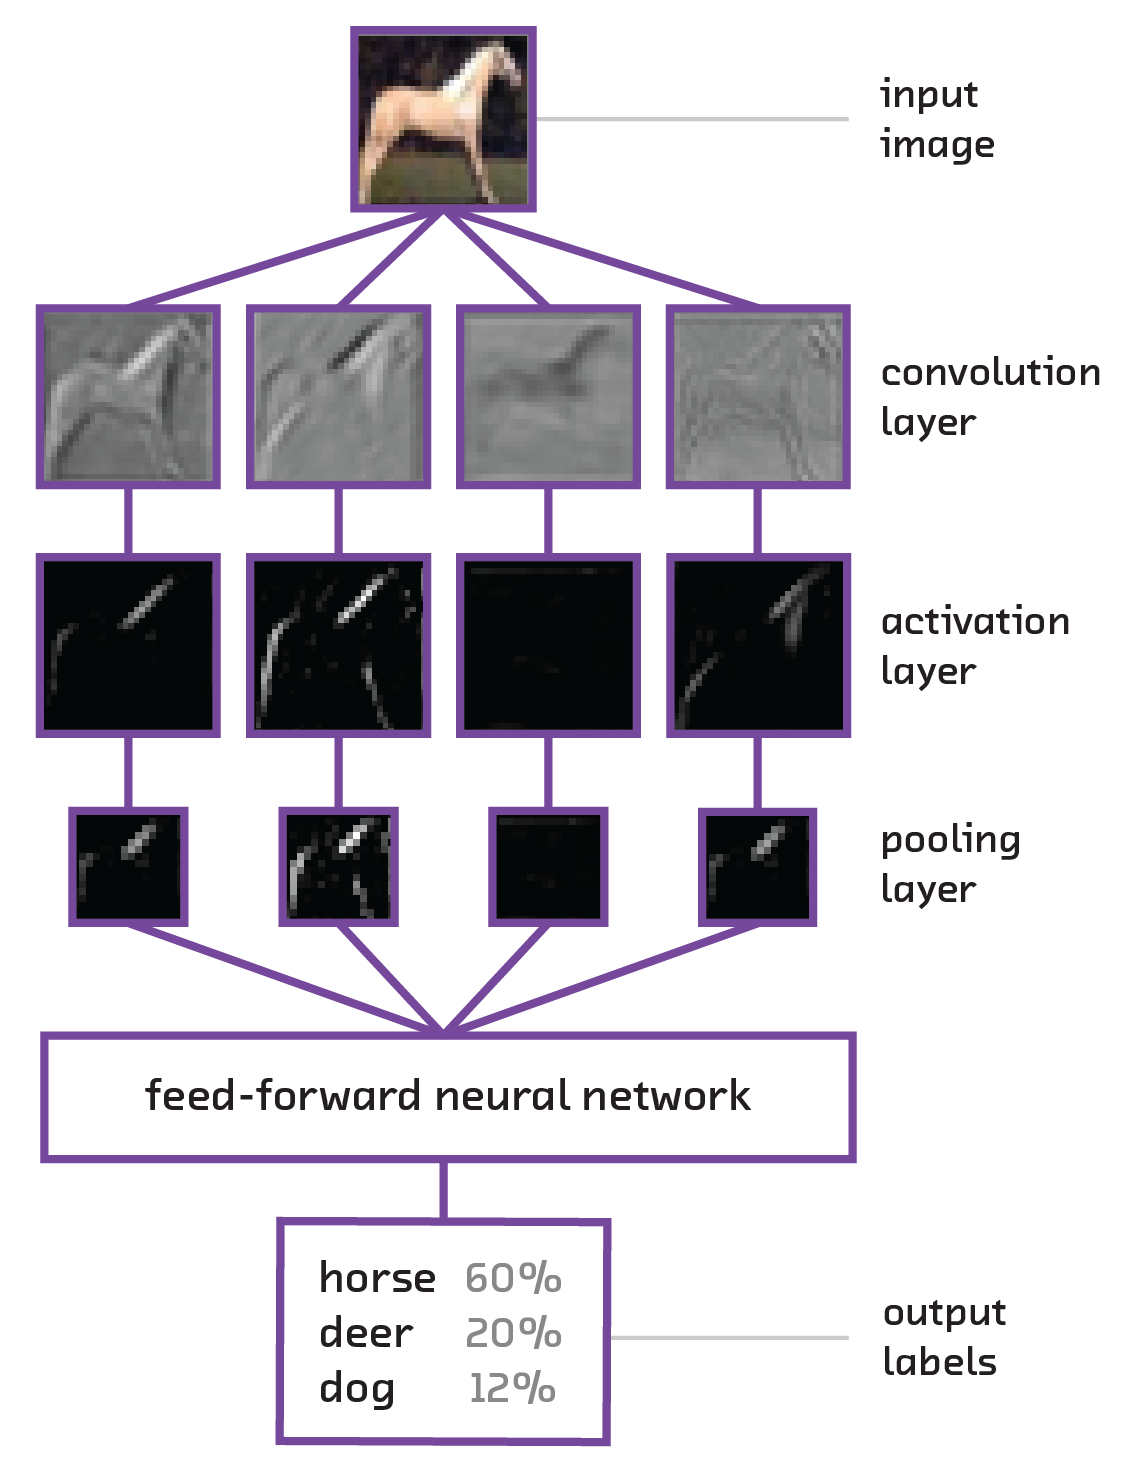 Figure of Convolutional Neural Network showing the processing of an image of a horse